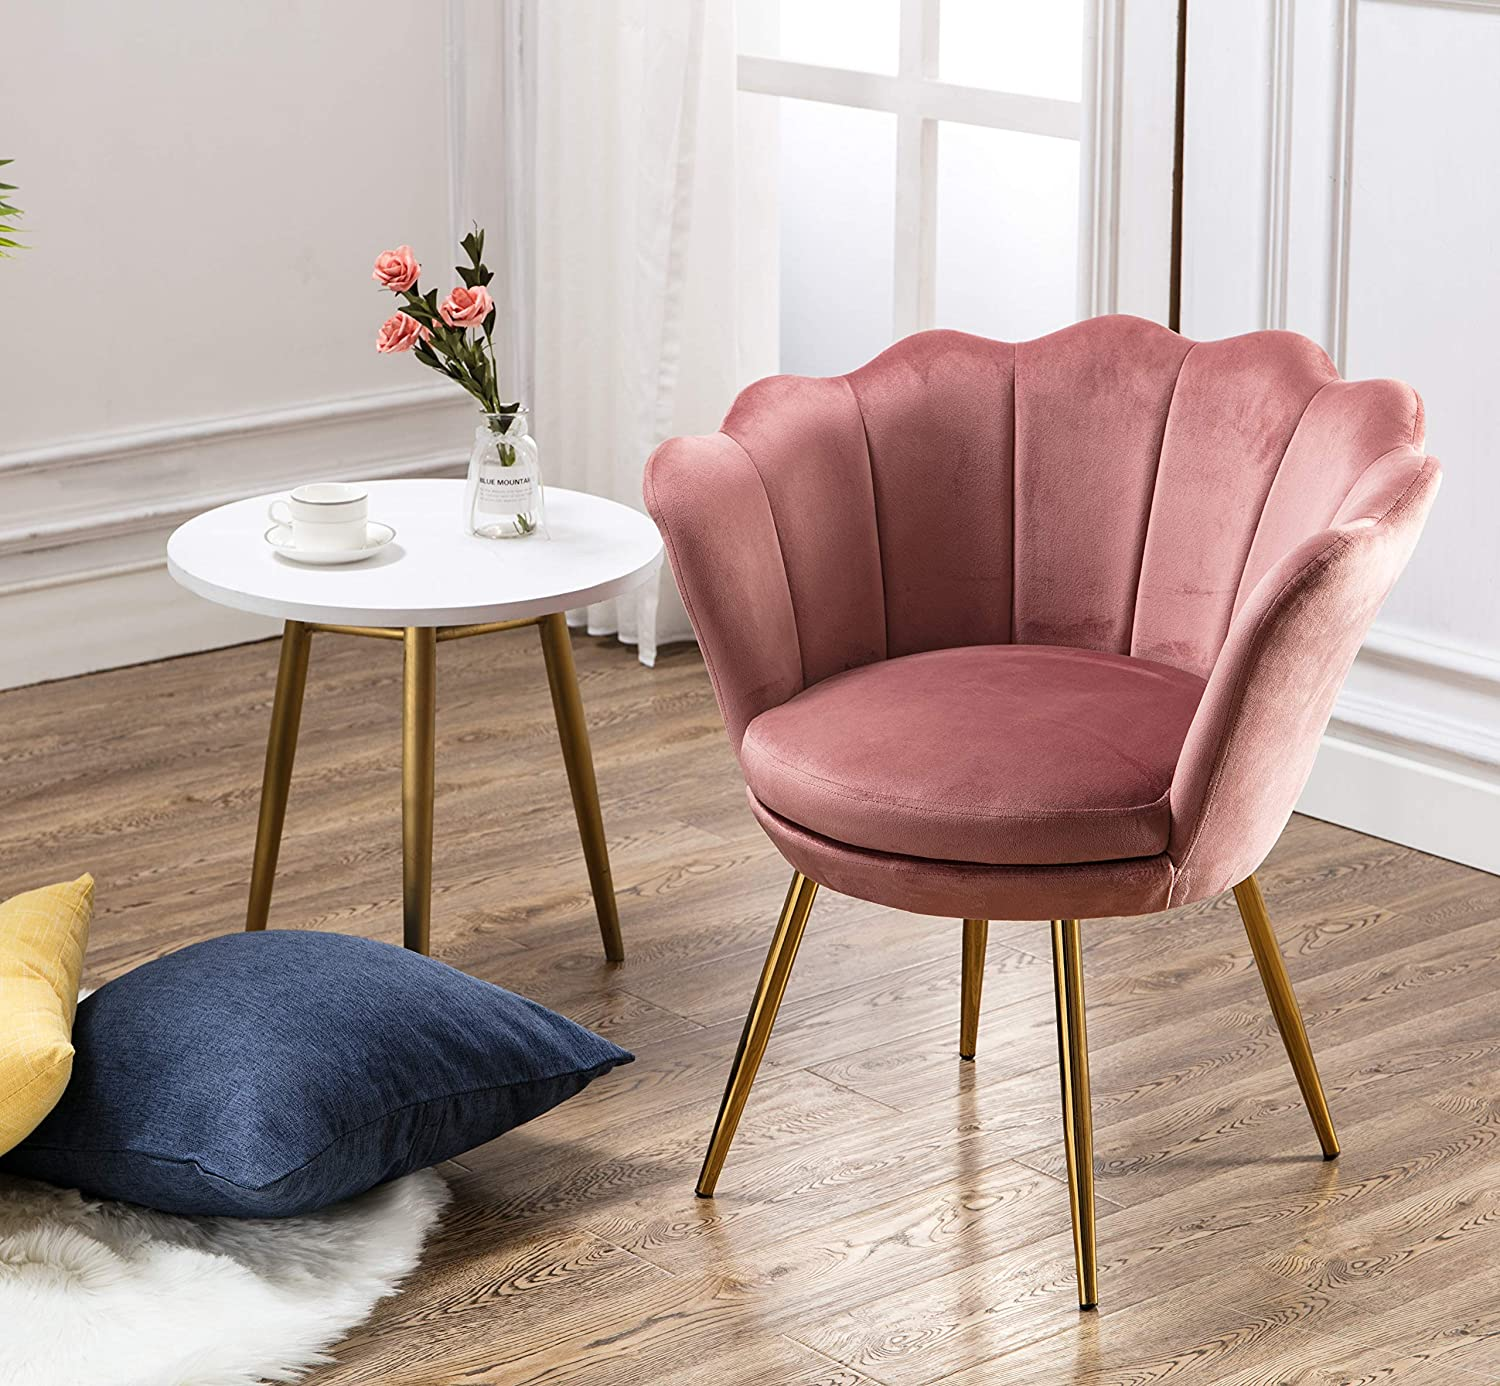 Wahson Velvet Accent Chair for Bedroom with Gold Plating Metal Legs,  Leisure Armchair for Living Room/Cafe/Vanity (Pink)